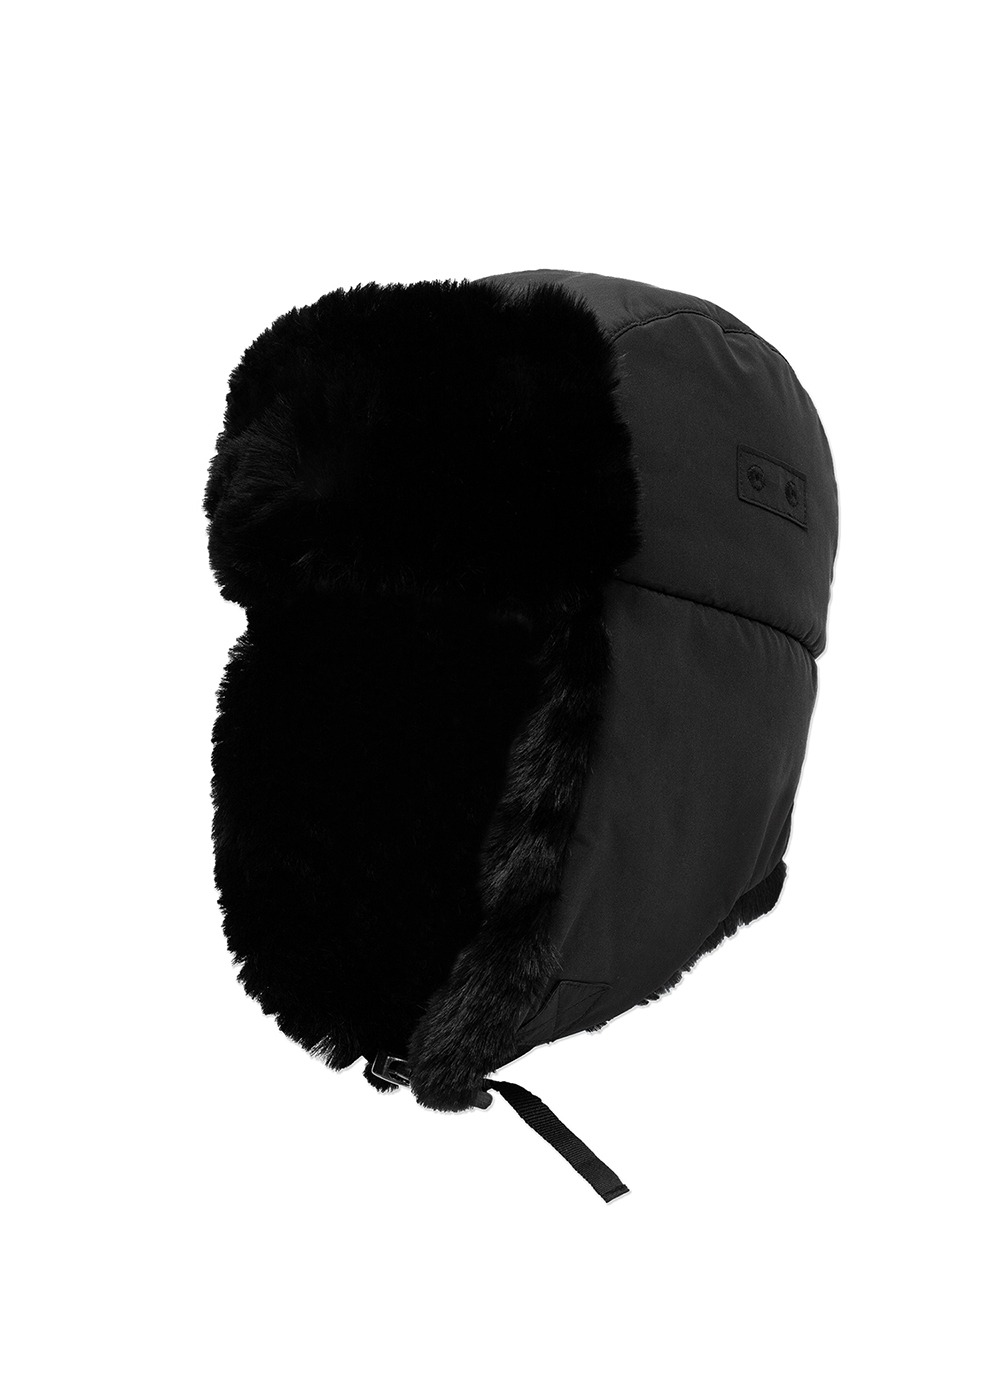 LMC TROOPER HAT black